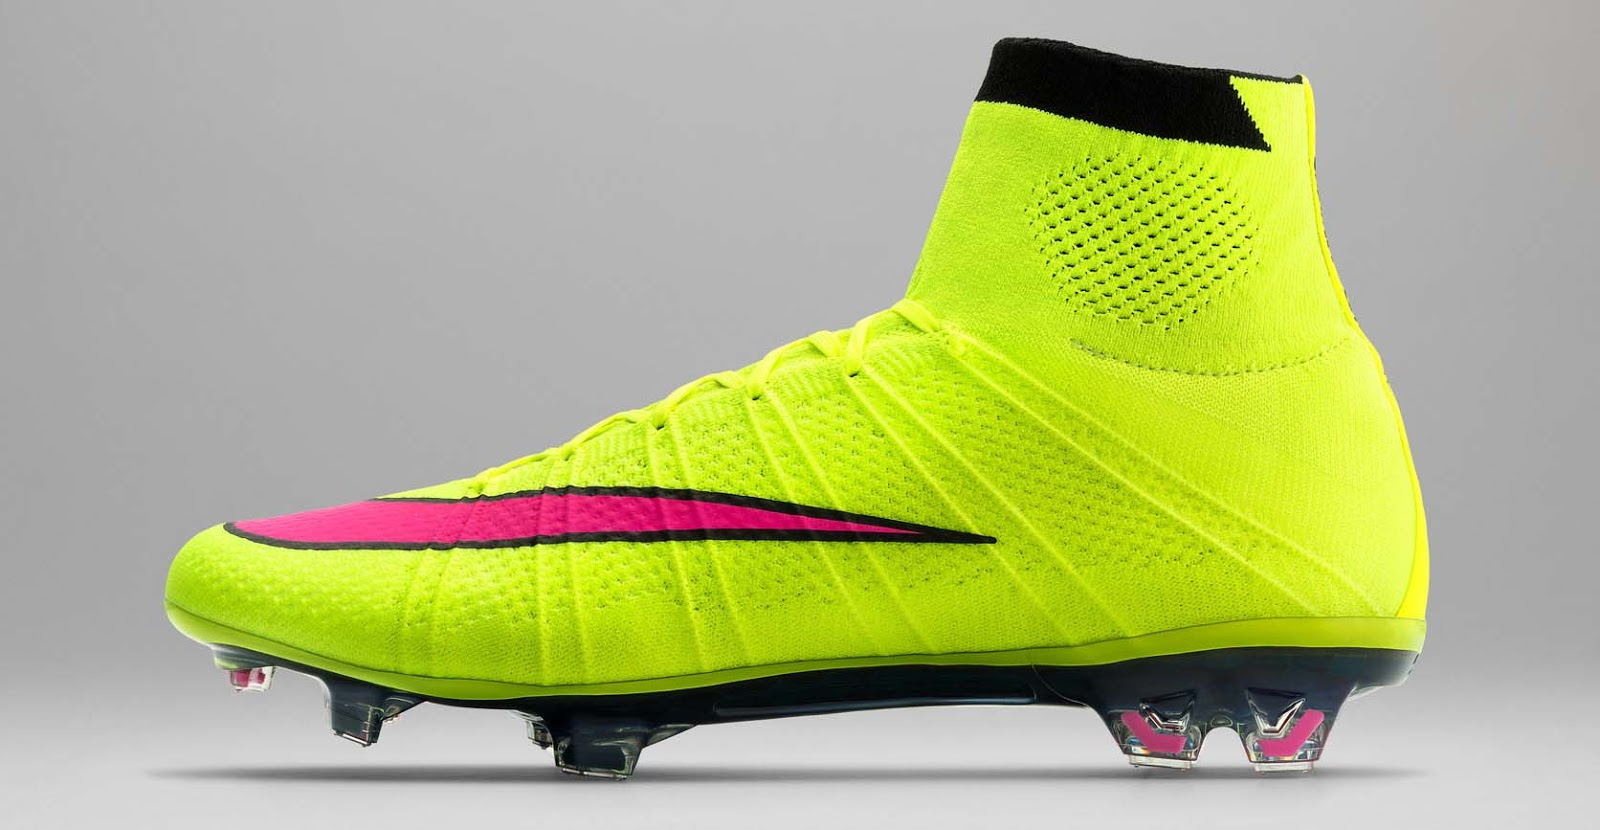 new nike 2015 football boot colorways nike highlight